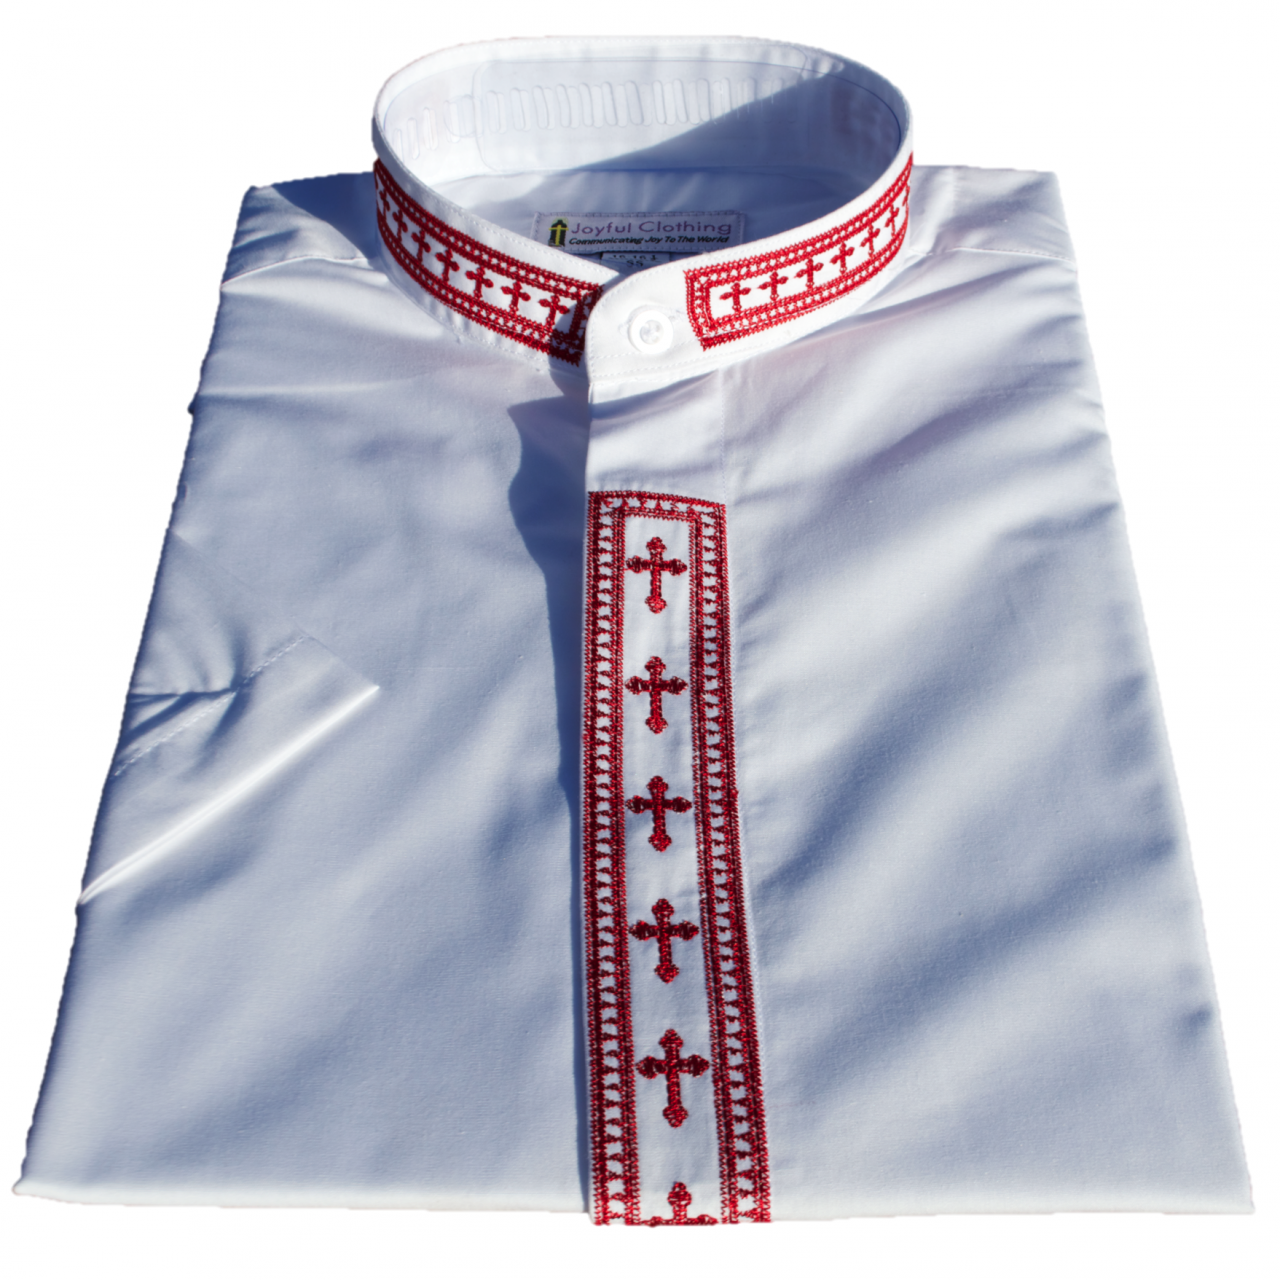 761. Women's Short-Sleeve Clergy Shirt With Fine Embroidery - White/Red